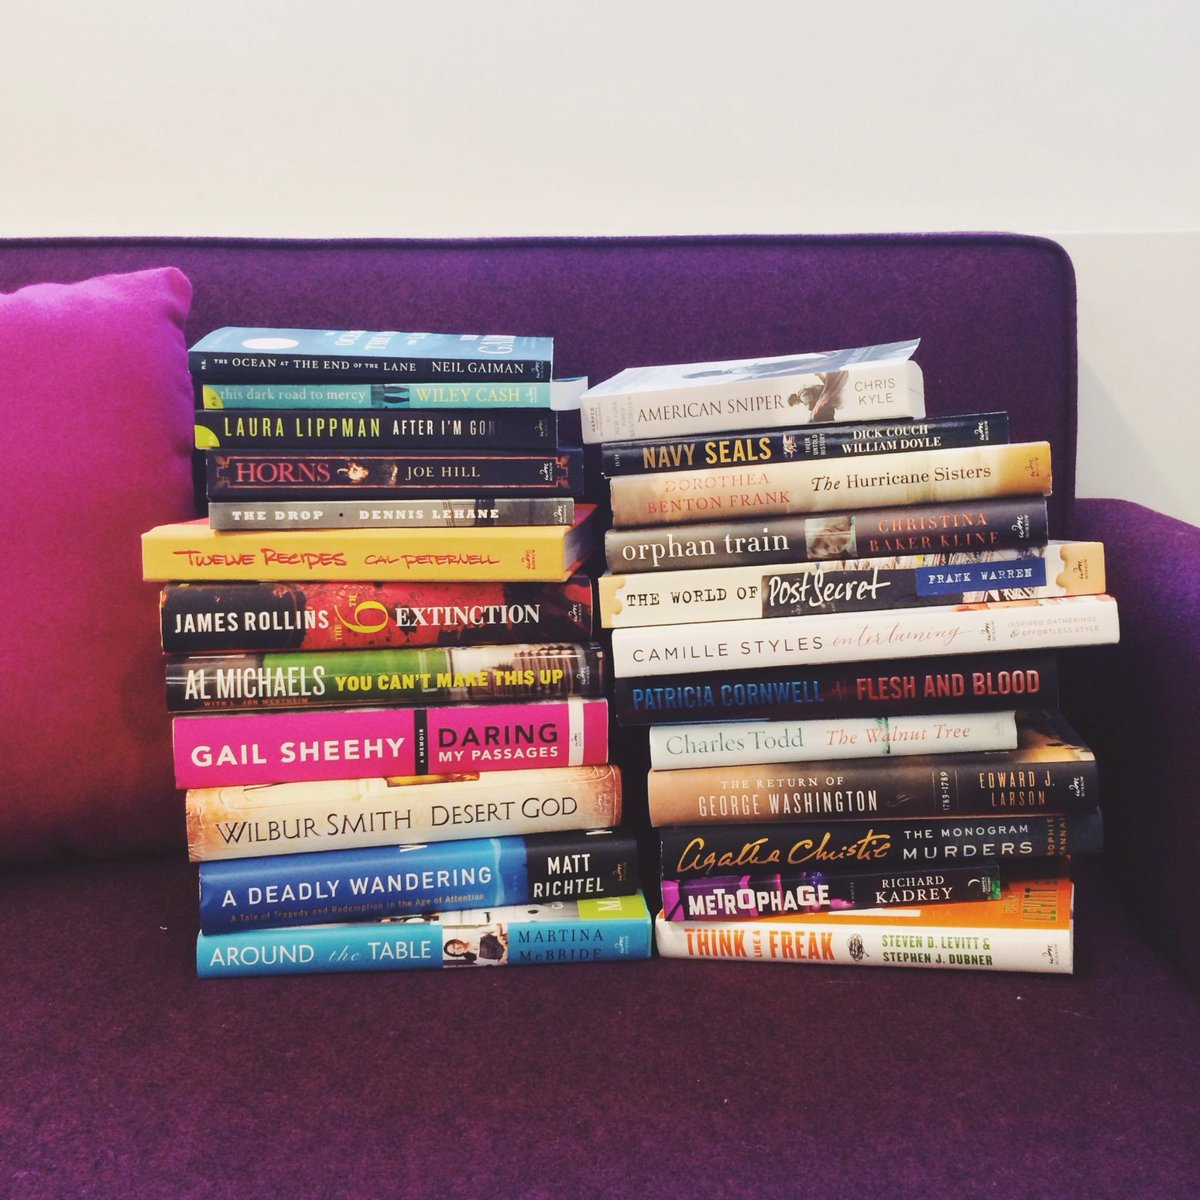 Book lovers! We're giving away a basket full of great reads. Enter for a chance to win here: http://t.co/rpiuiB58Pl http://t.co/M1hpItNAi8